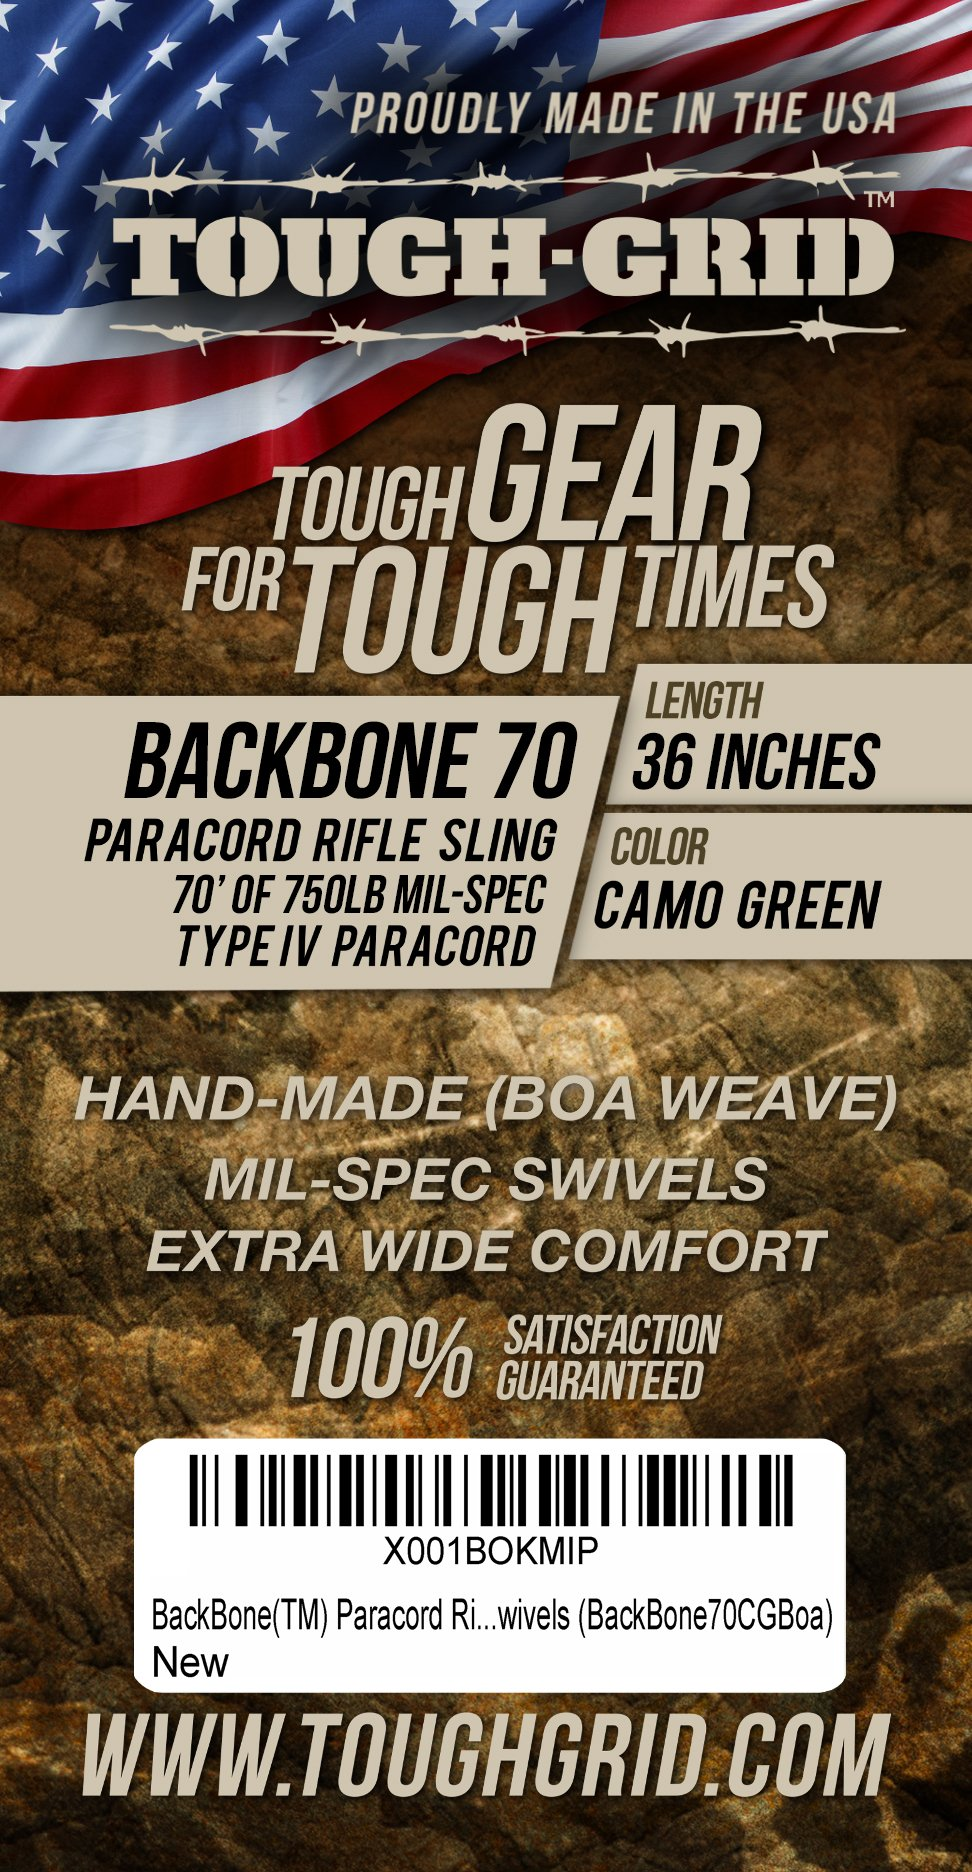 TOUGH-GRID Backbone(TM) Paracord Rifle Sling - Gun Sling/Rifle Sling - Handmade in The USA with Authentic Mil-Spec 750lb Type IV Paracord and Mil-Spec Swivels (BackBone70CGBoa) by TOUGH-GRID (Image #4)